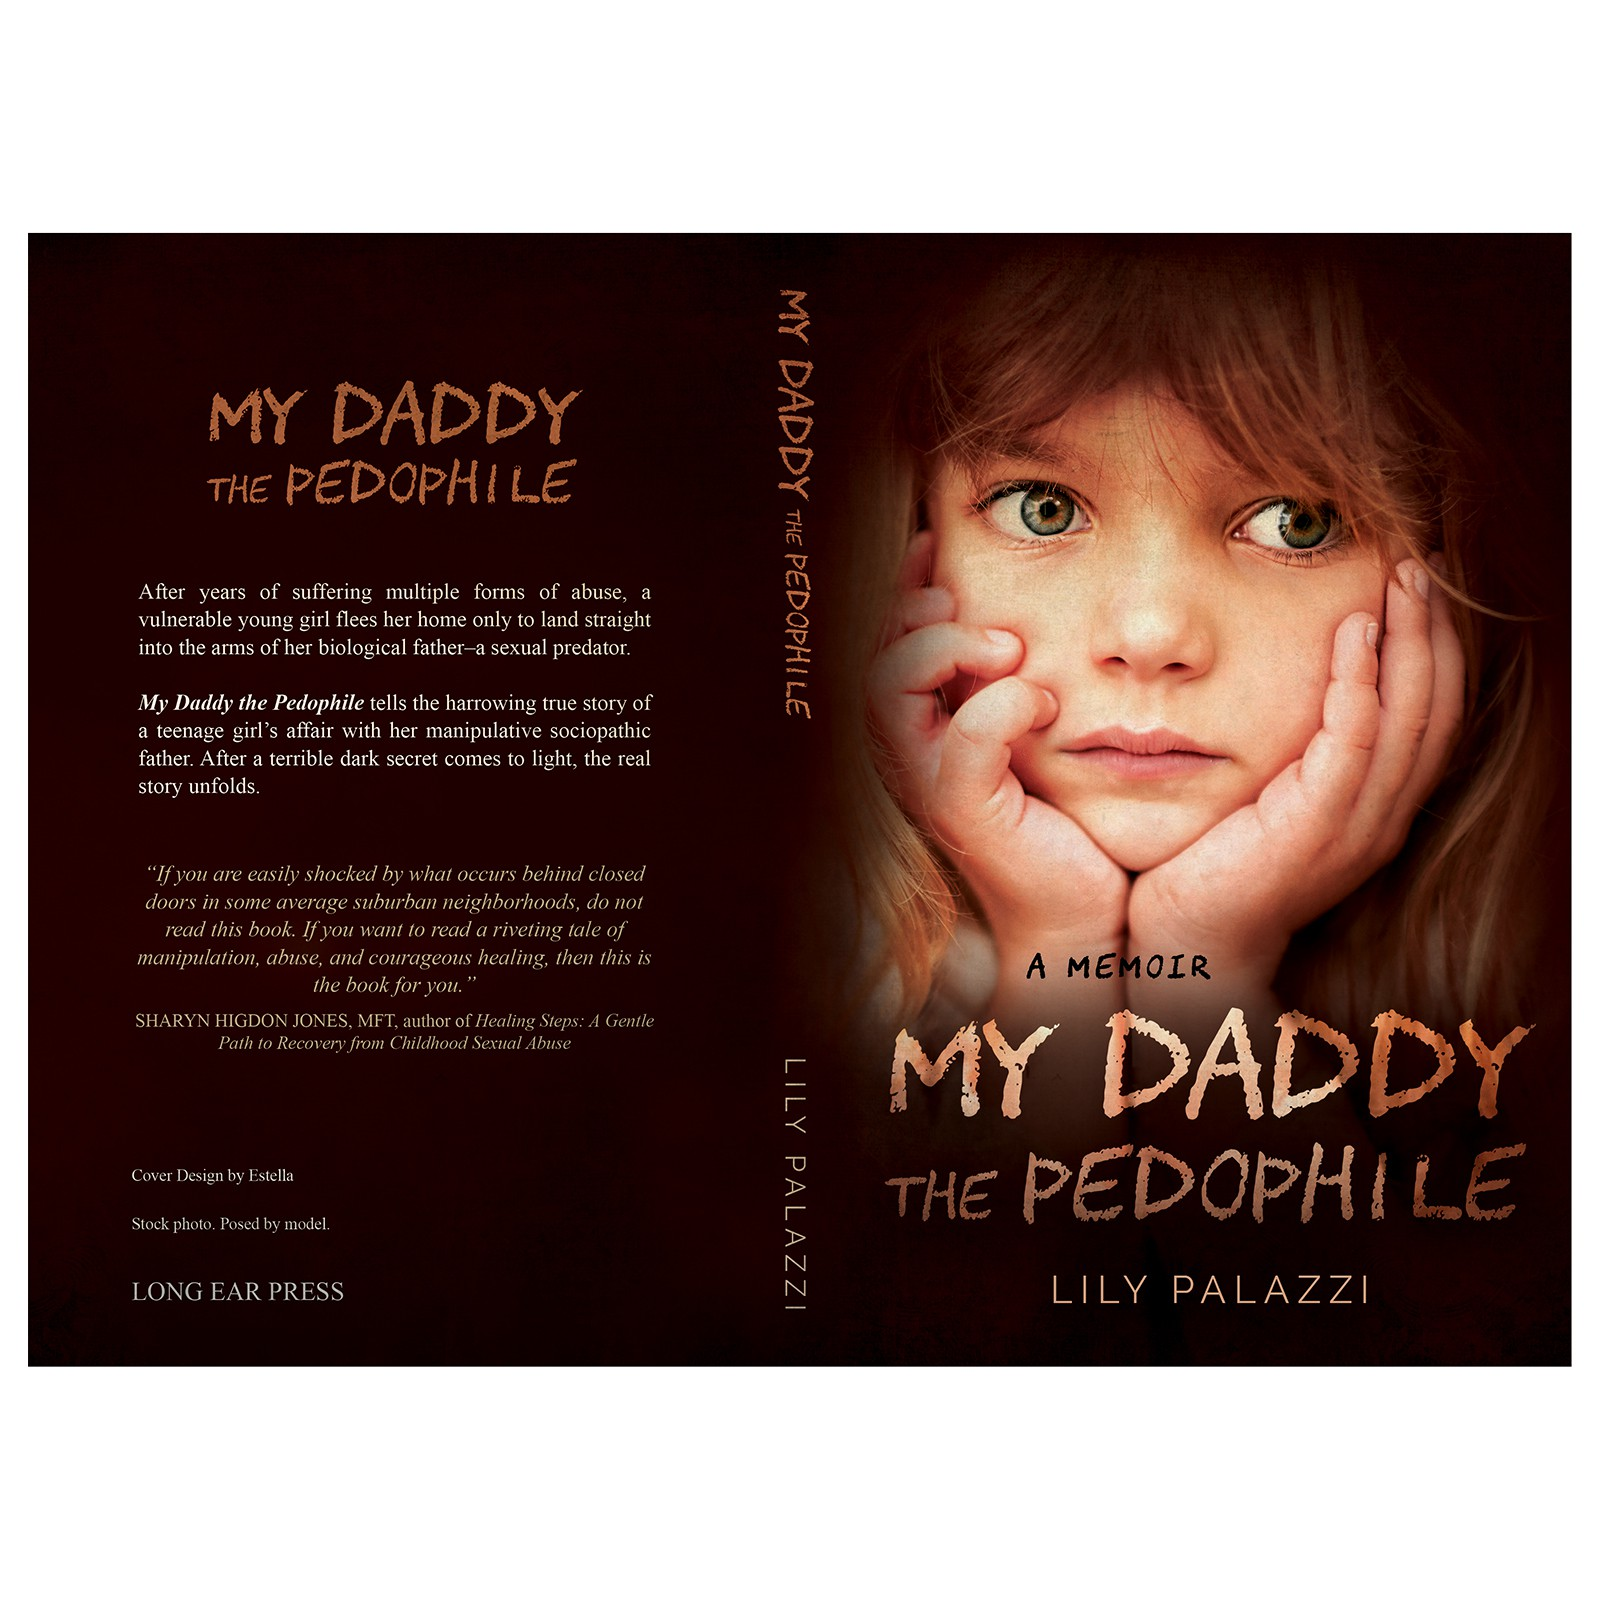 Create a book cover for a memoir about a girl's affair with her father—a sexual predator